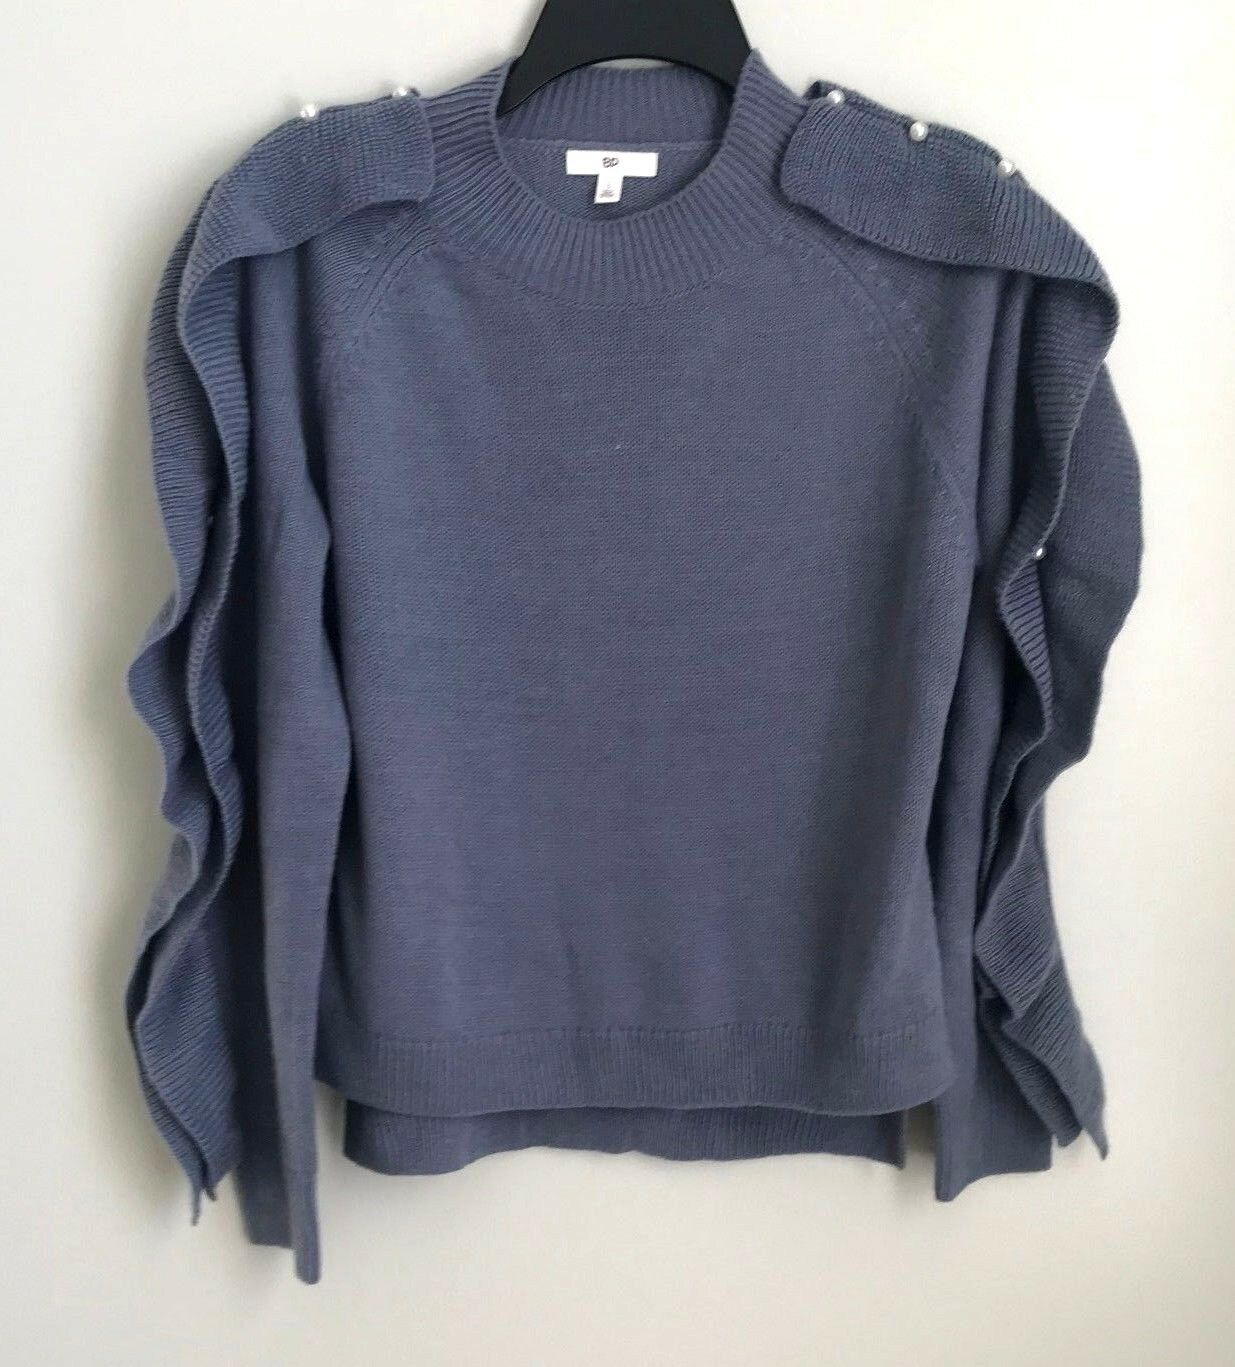 New Bp. Nordstrom Small bluee Imitation Pearl & Ruffle Trim Sweater